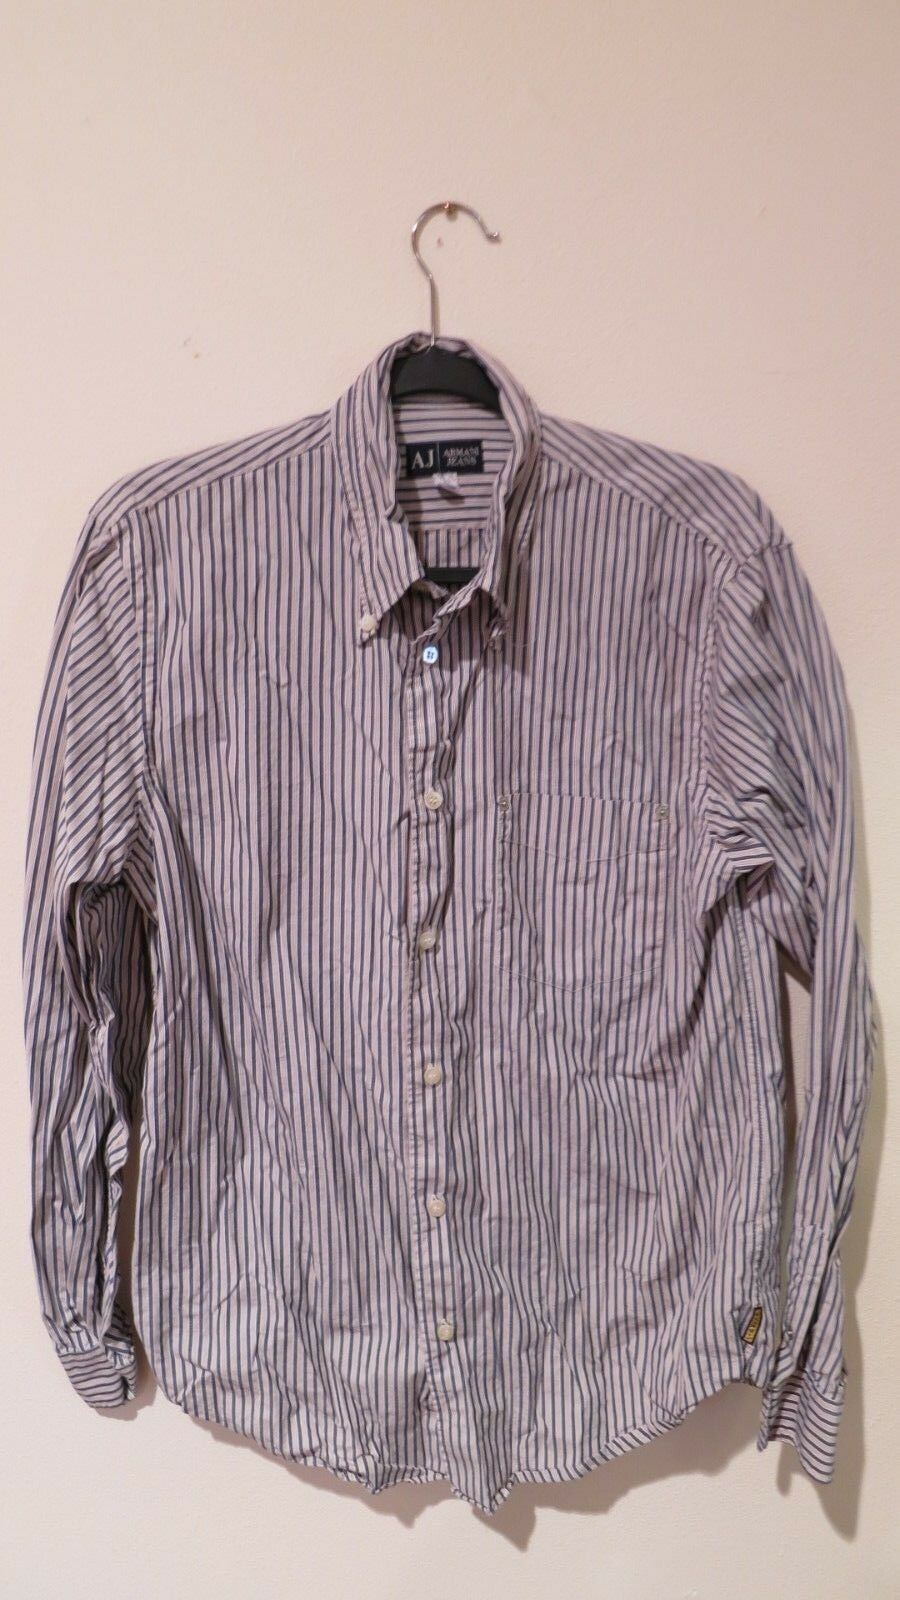 Armani Jeans Striped Shirt L S Button Up S M Medium Authentic White bluee NICE